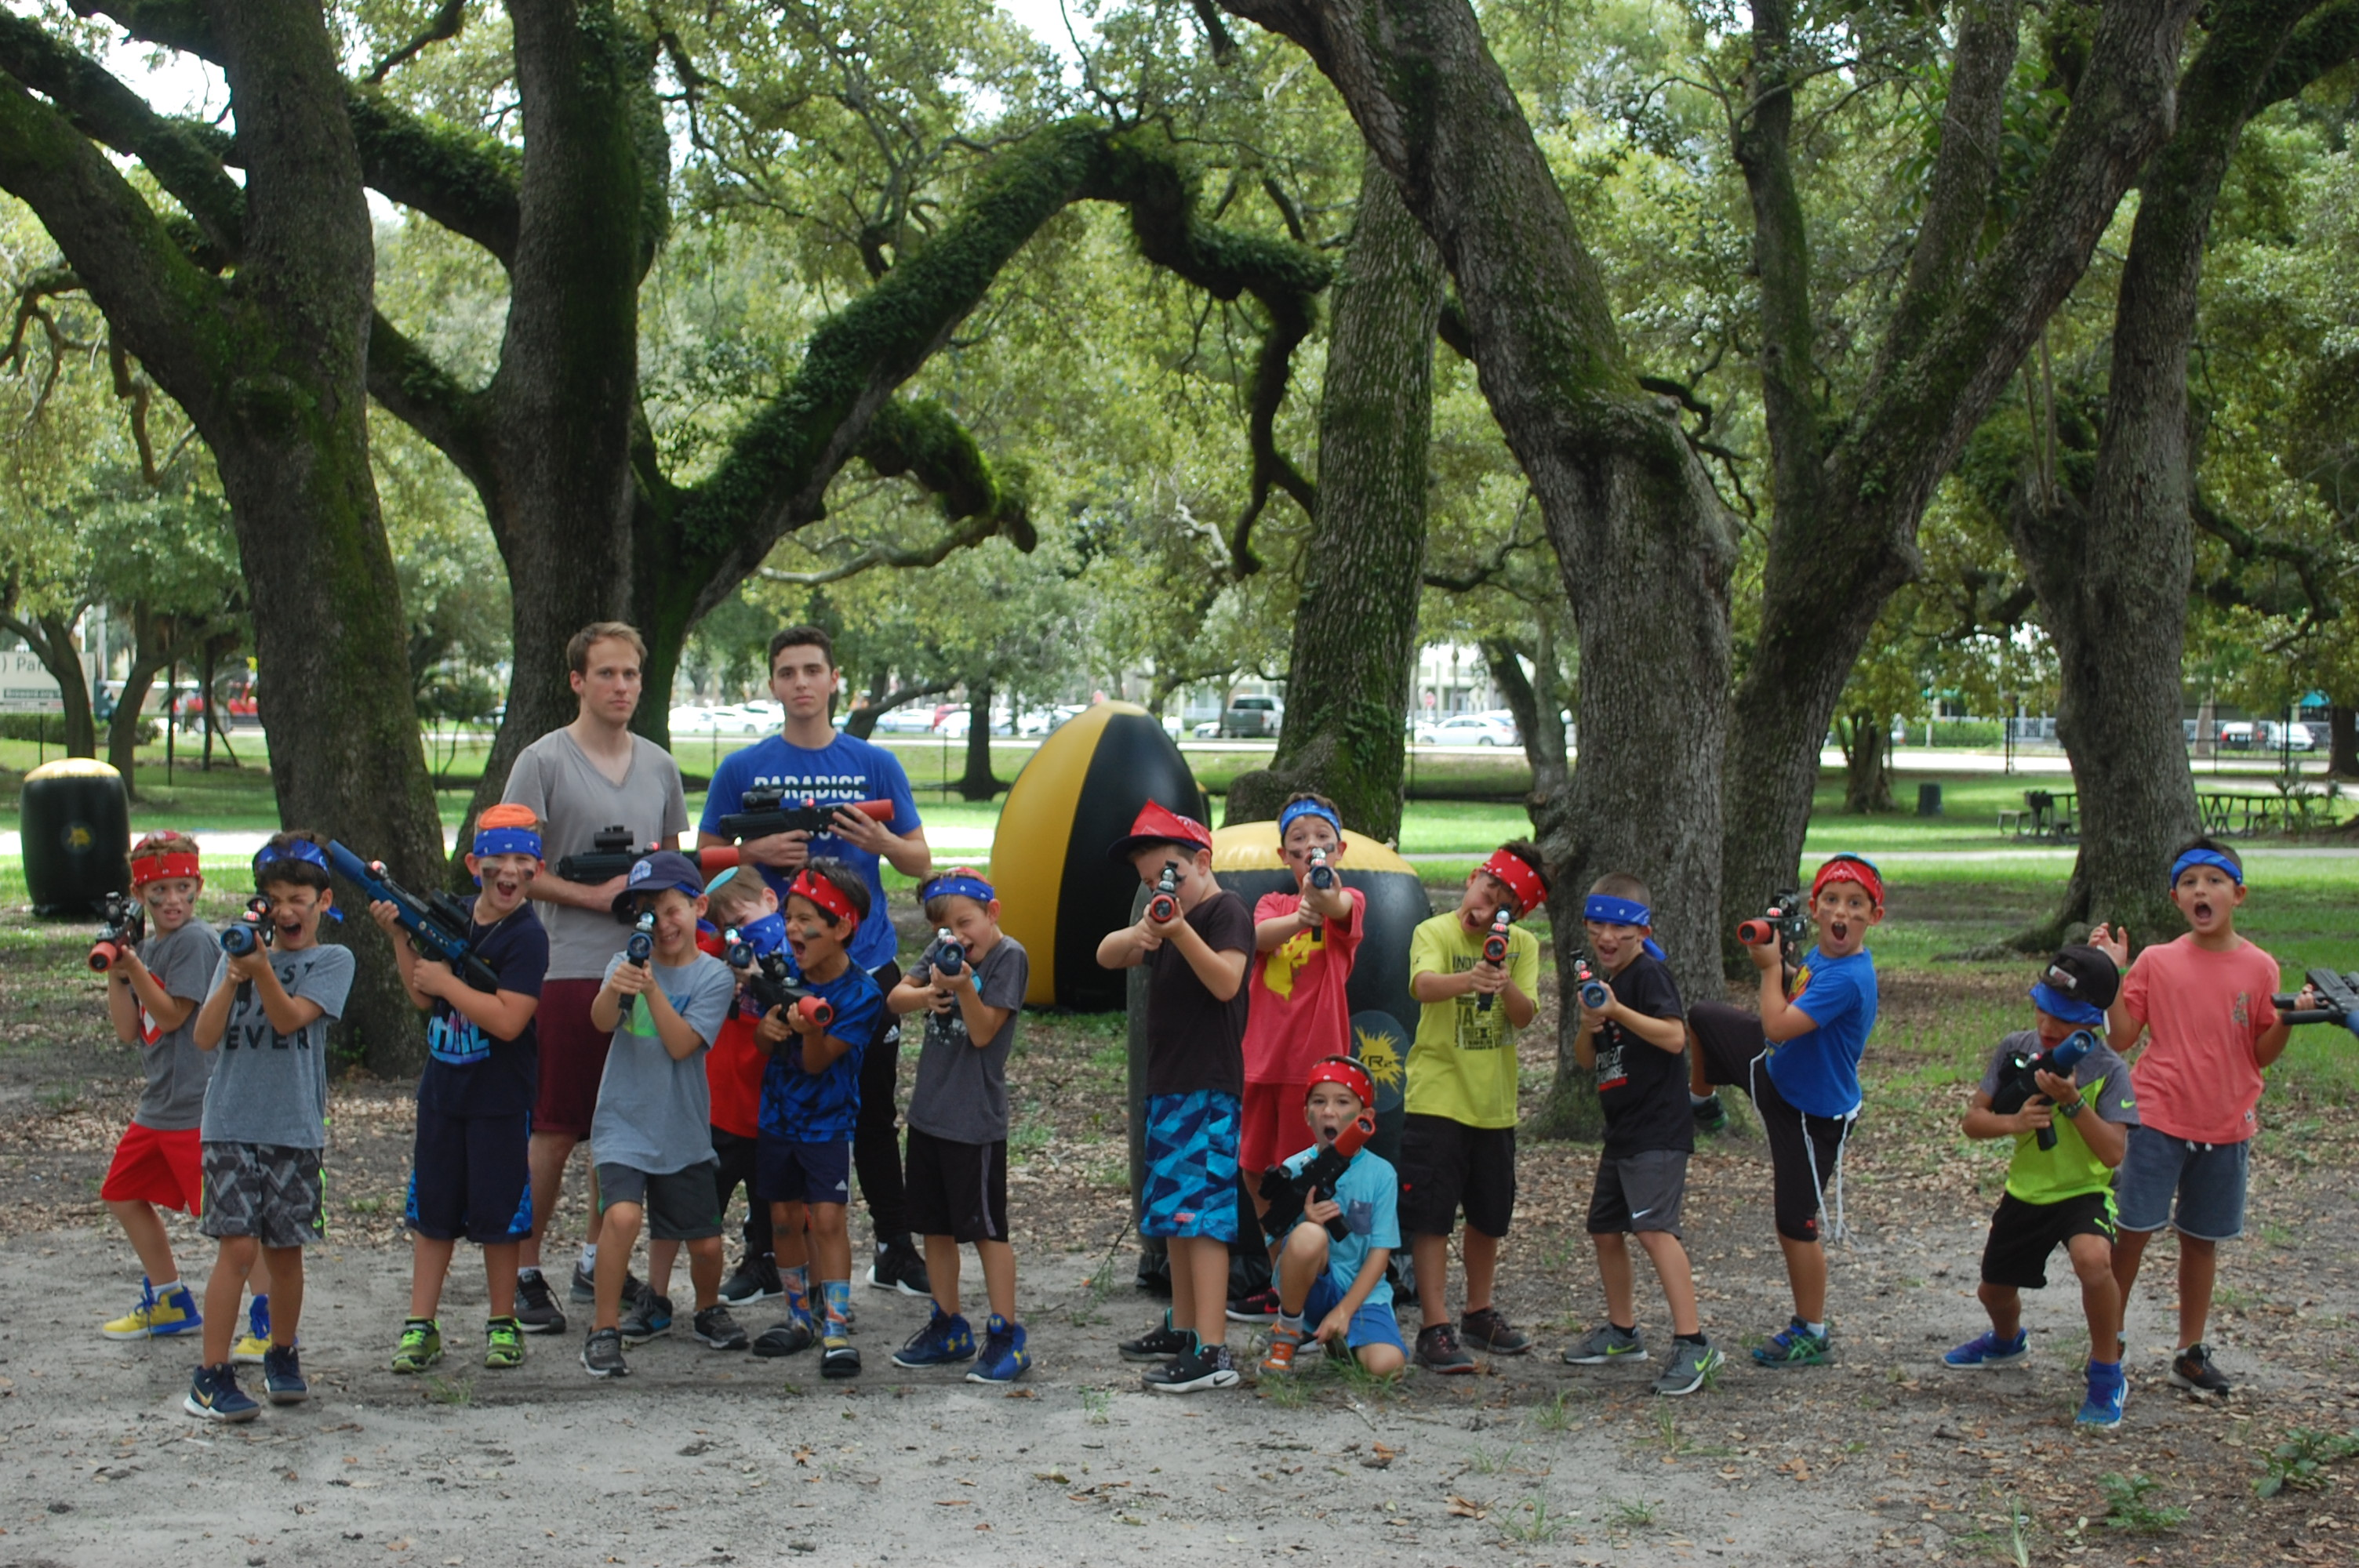 Cool things to do at GT Bray Park Bradenton, FL